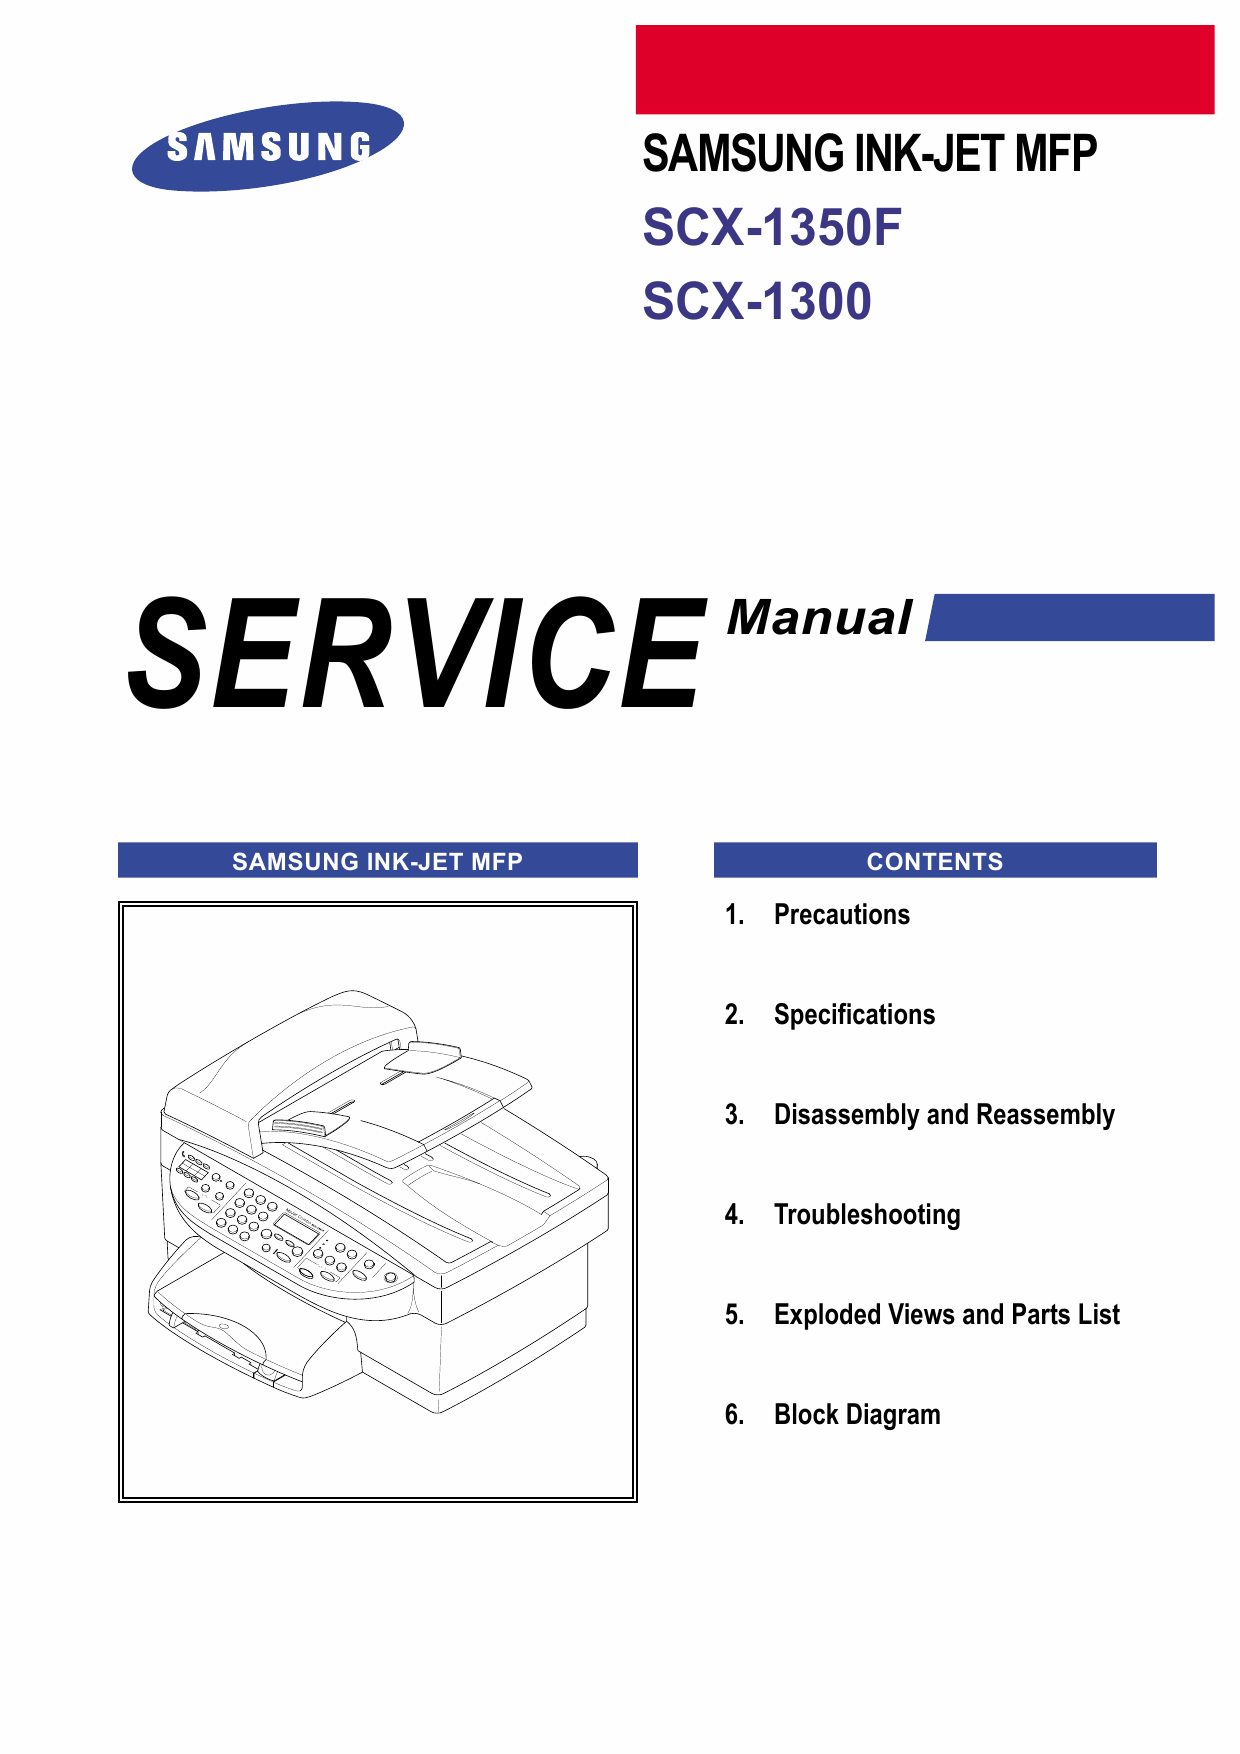 Samsung InkJet-MFP SCX-1350F 1300 Parts and Service Manual-1